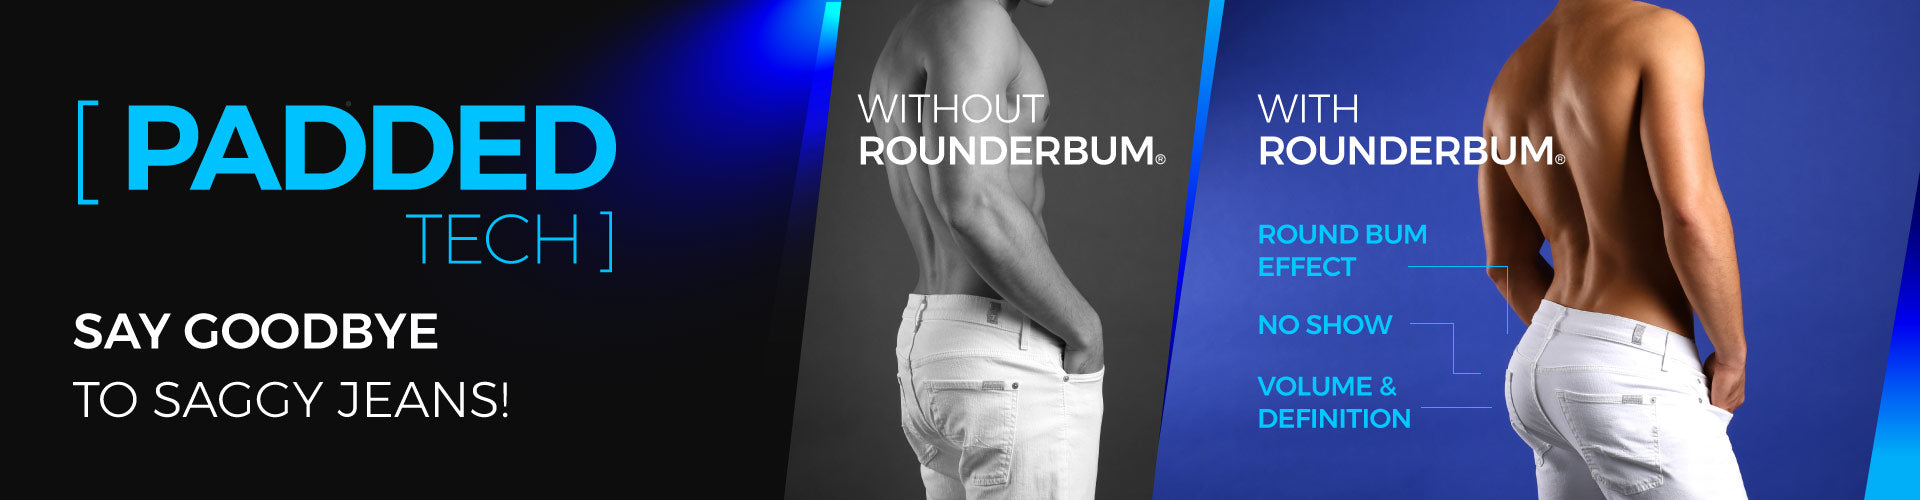 rounderbum padded tech collection underwear for men